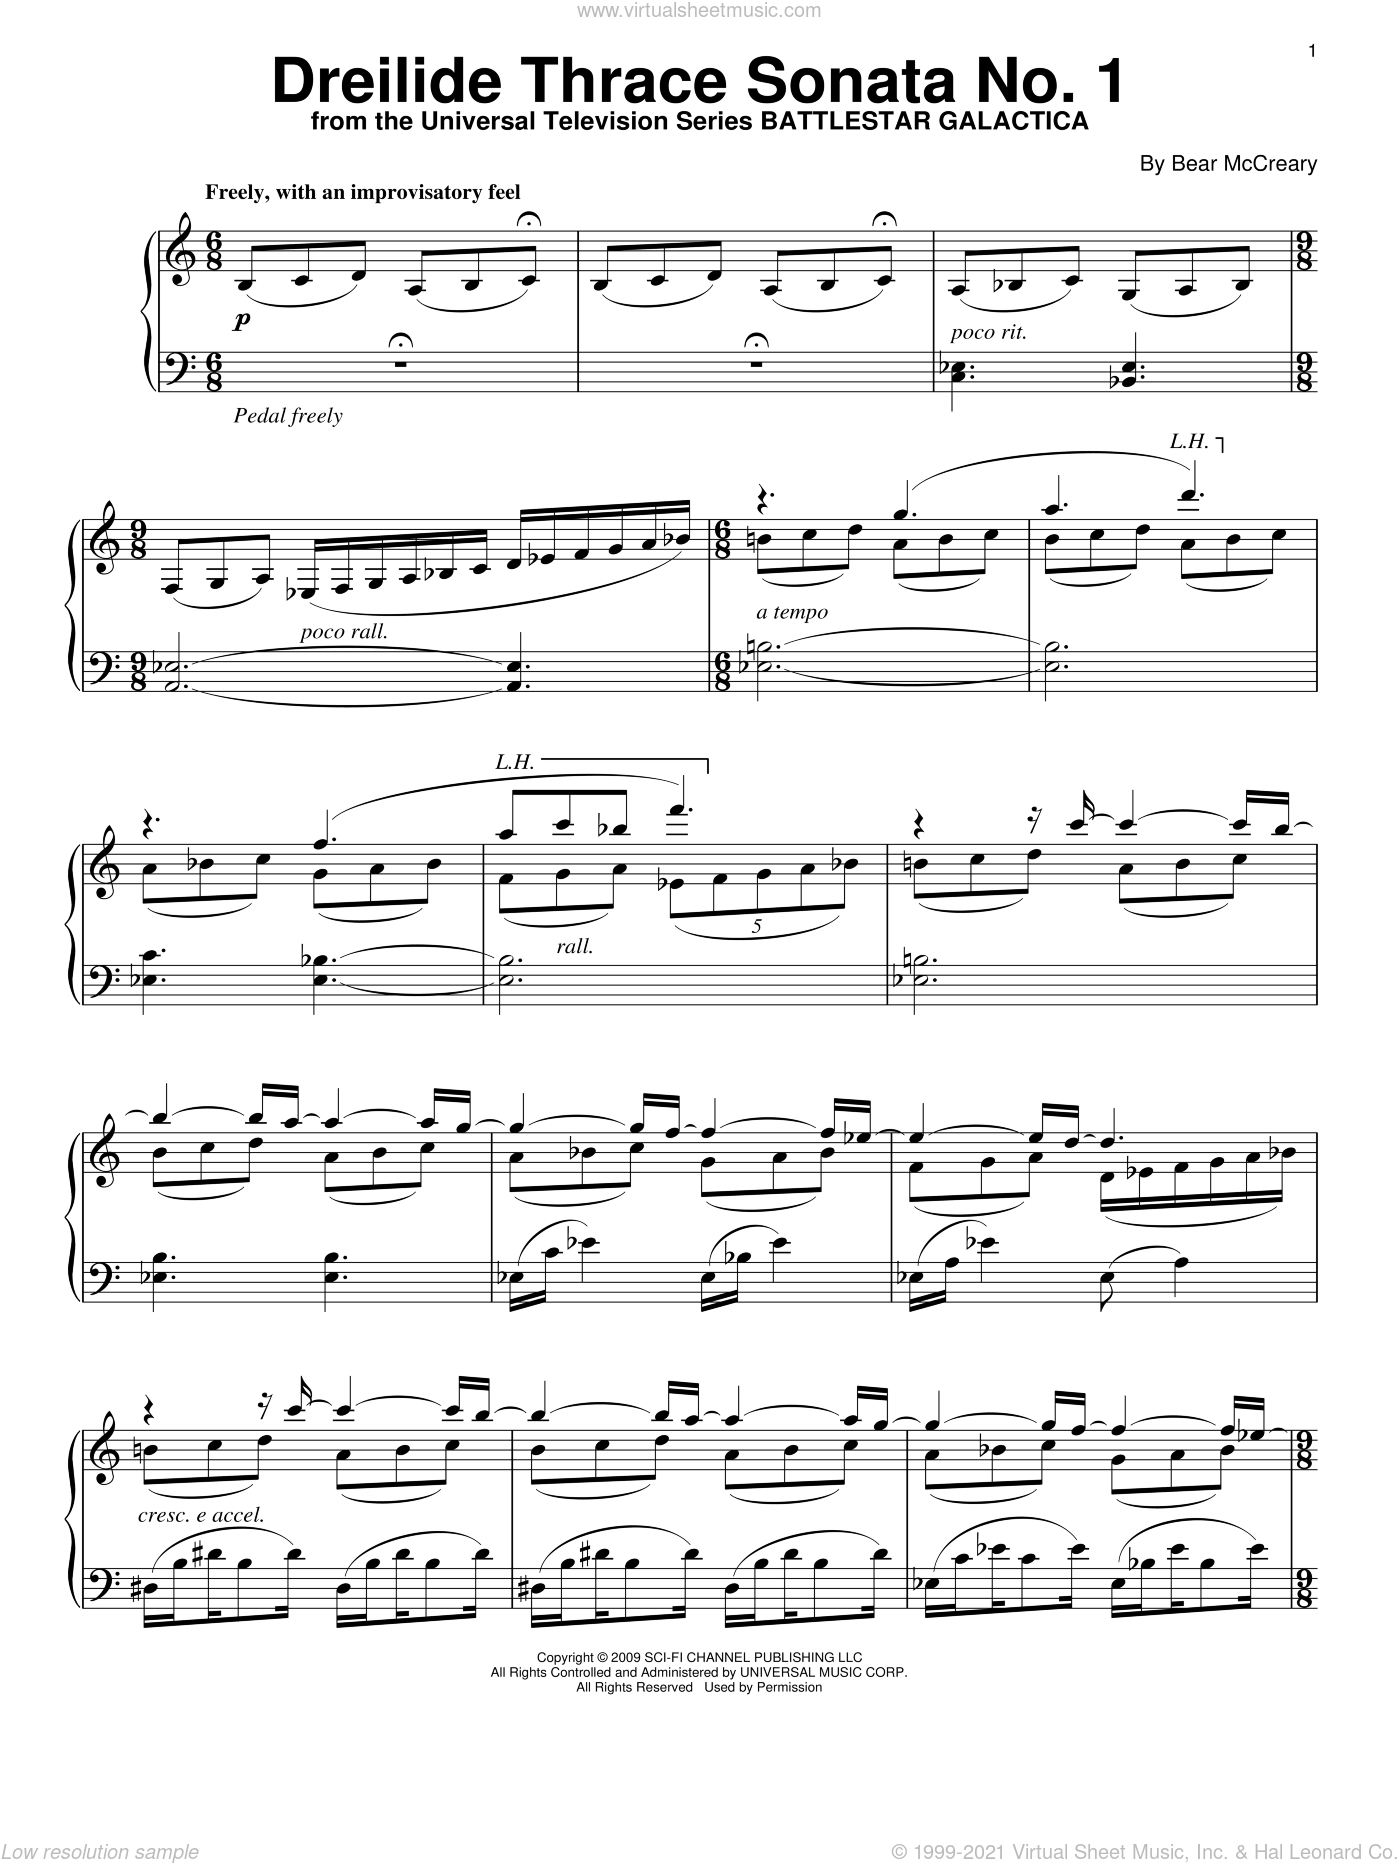 Dreilide Thrace Sonata No. 1 sheet music for piano solo by Bear McCreary